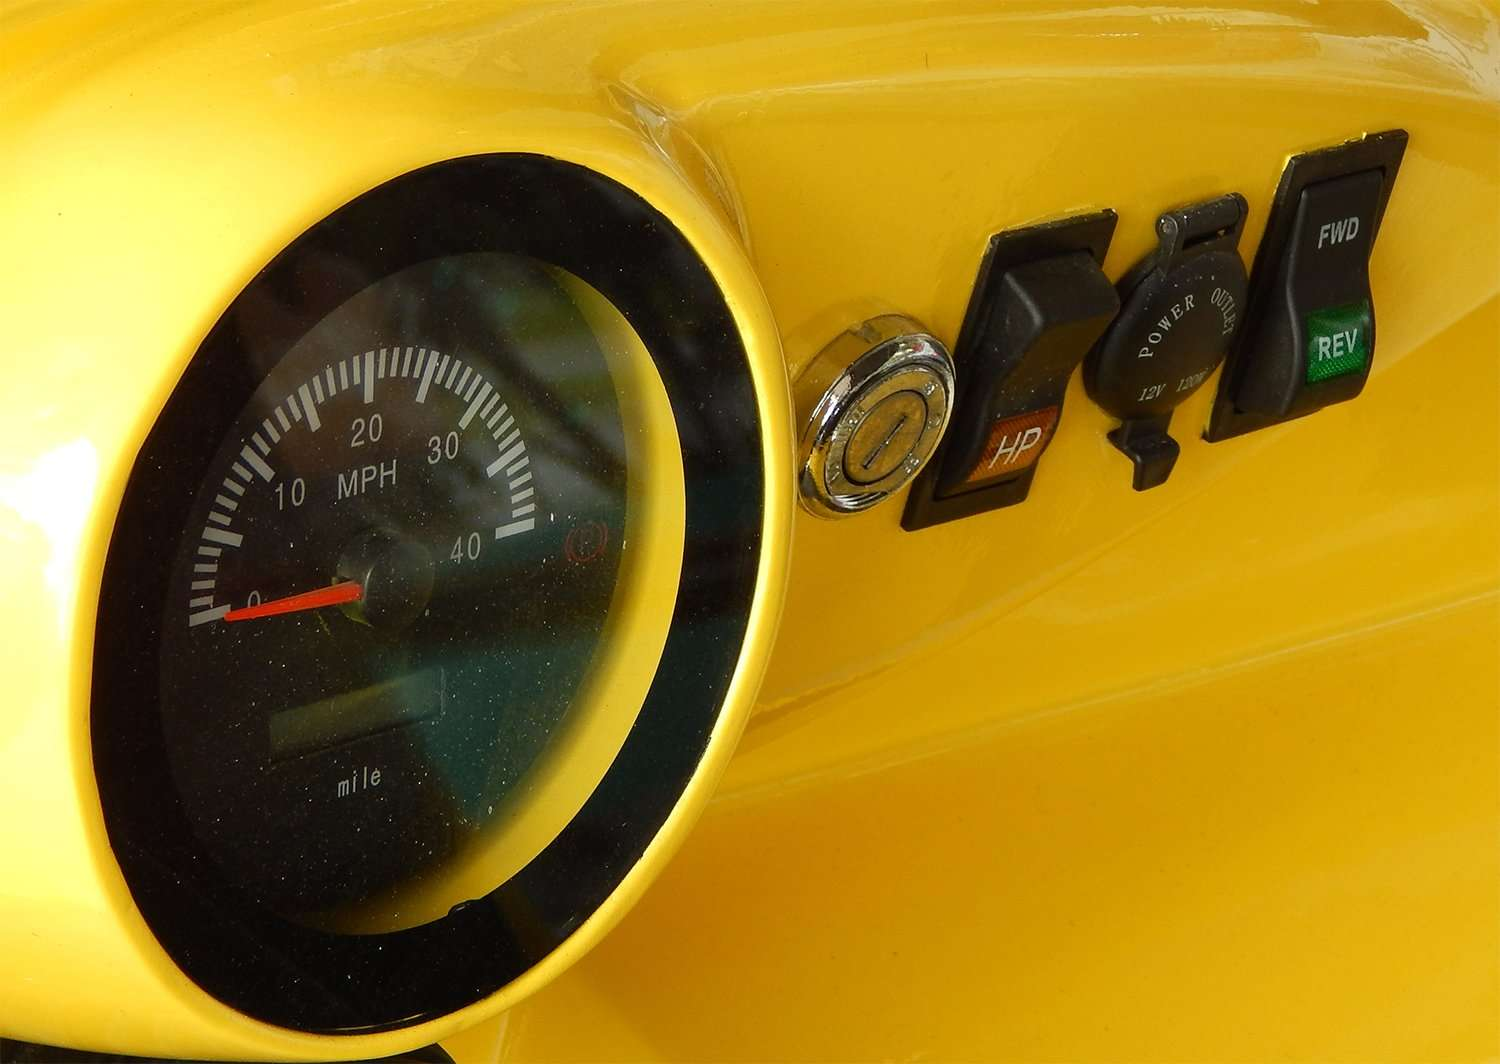 Speedometer Milage Reverse And Forward Switch On Dashboard Of Roadster Golf Cart By Starev